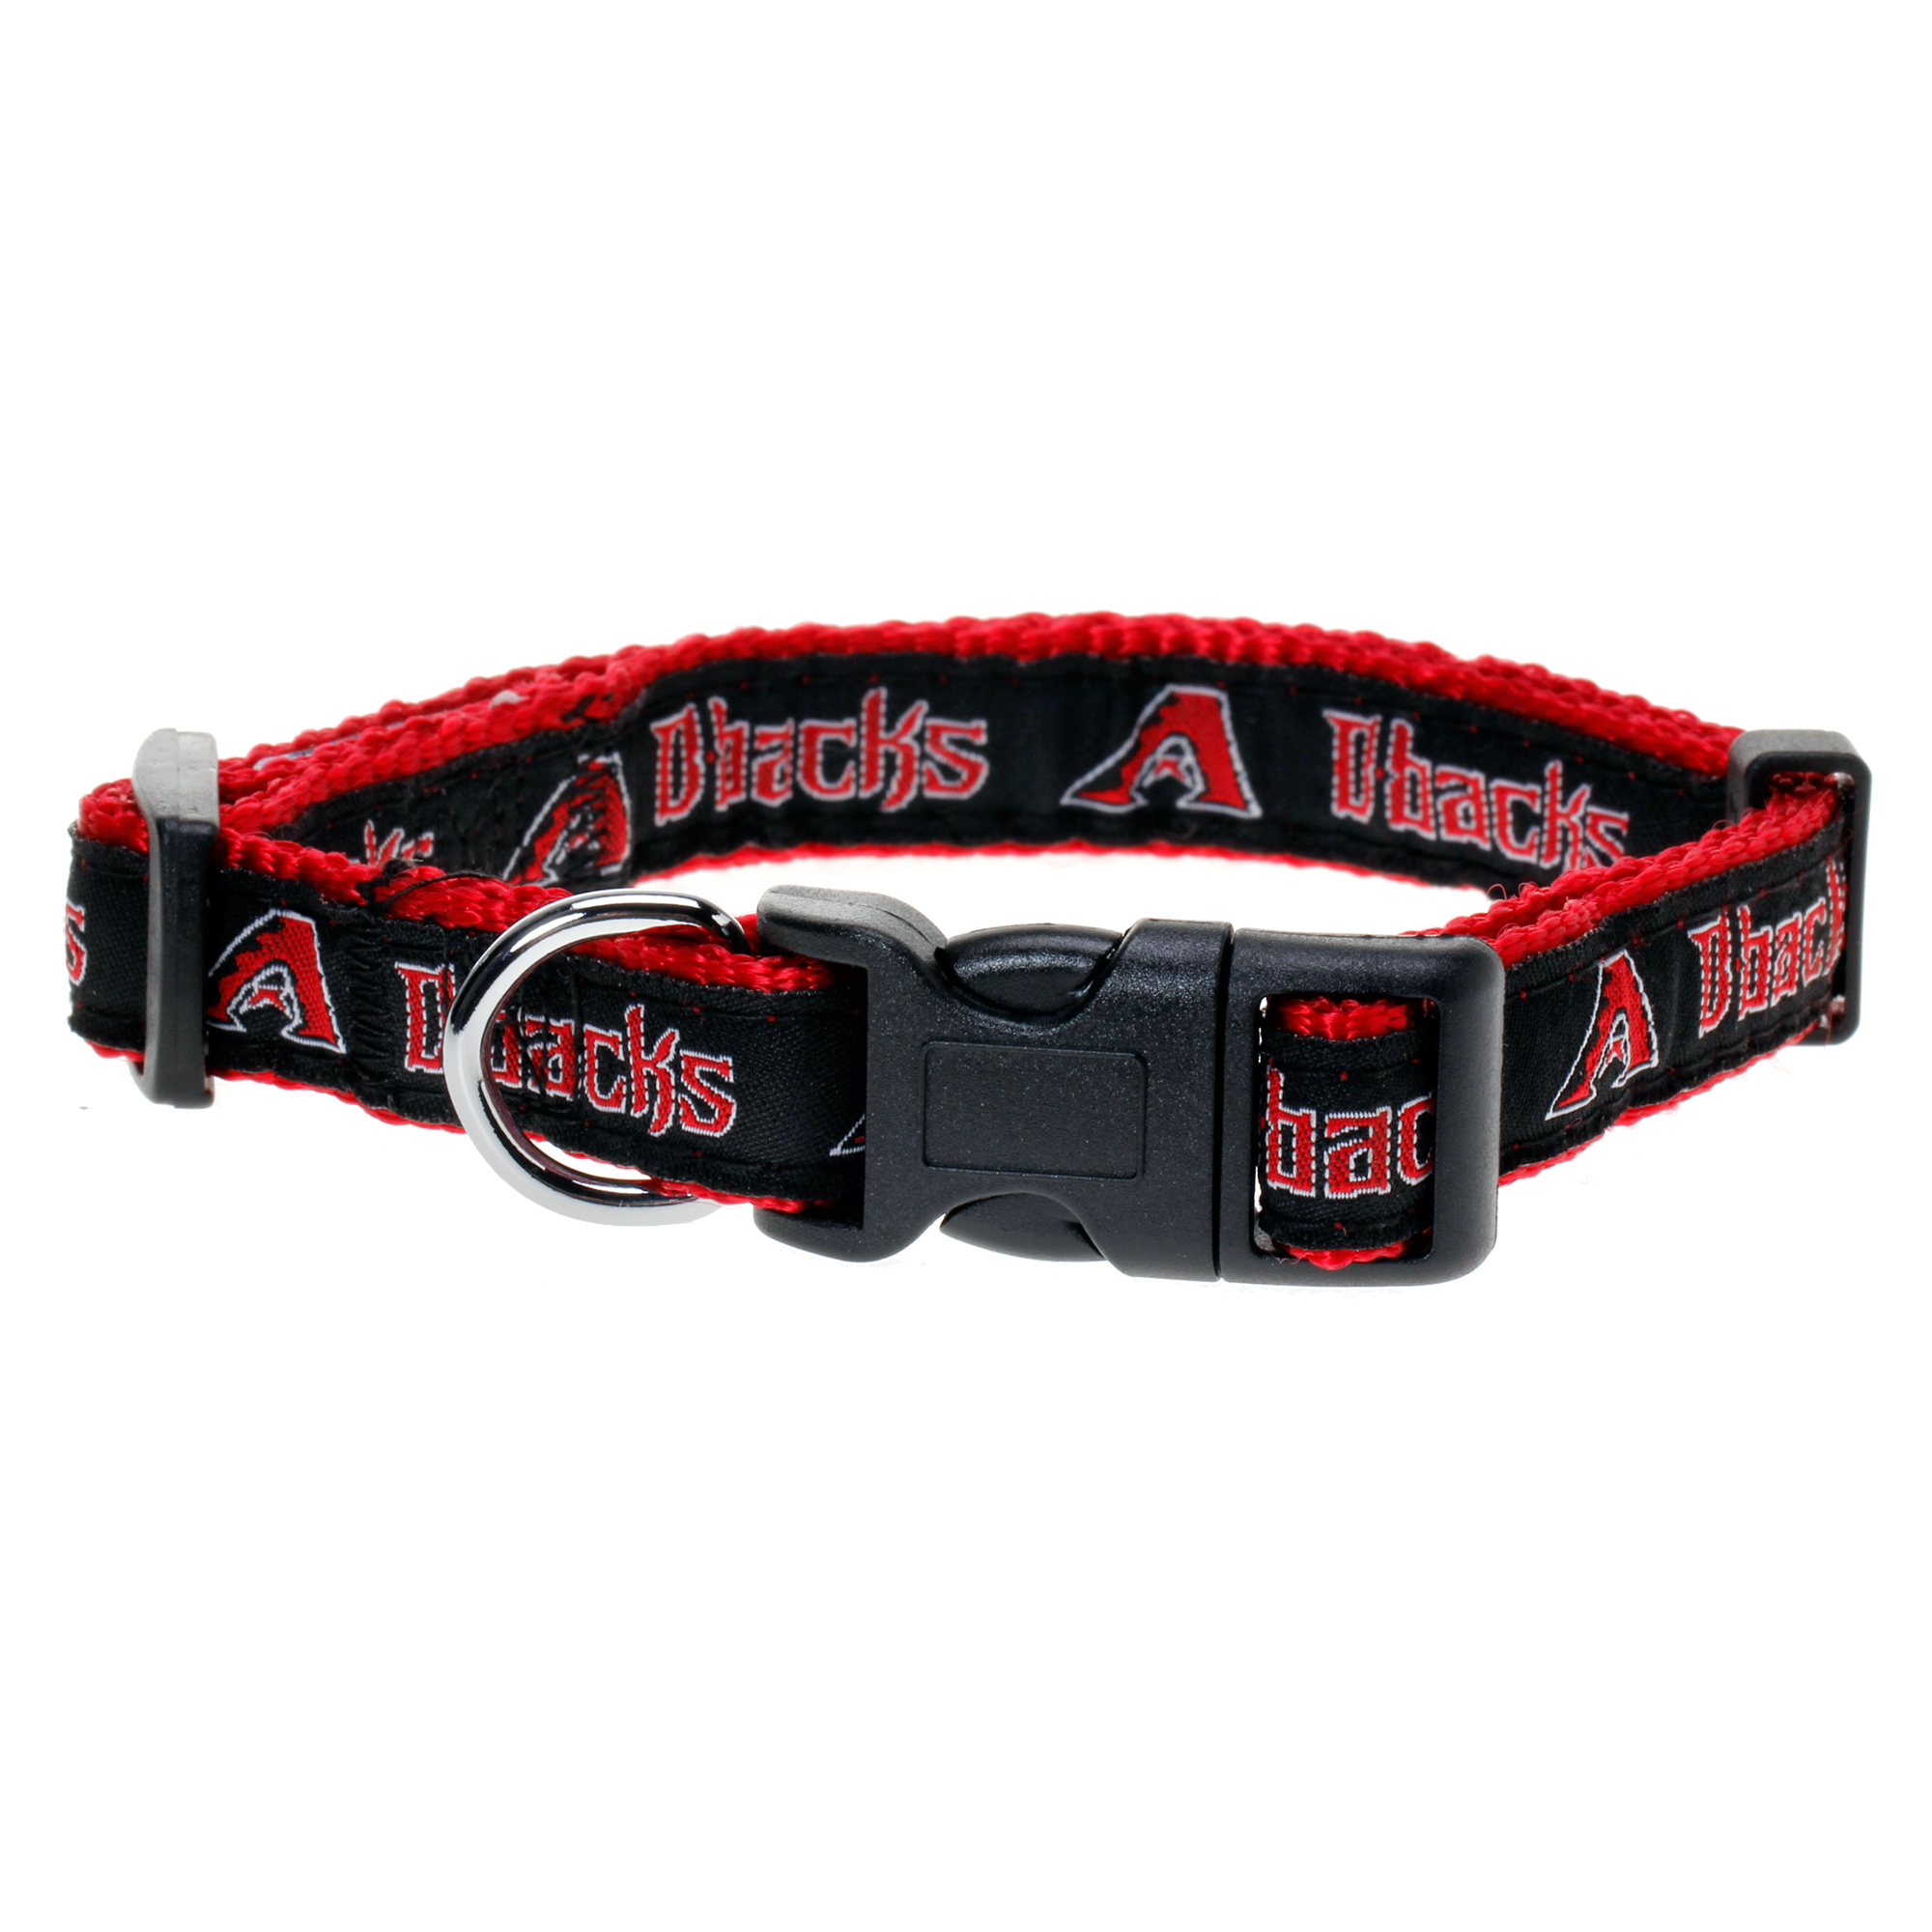 Arizona Diamondbacks Nylon Dog Collar